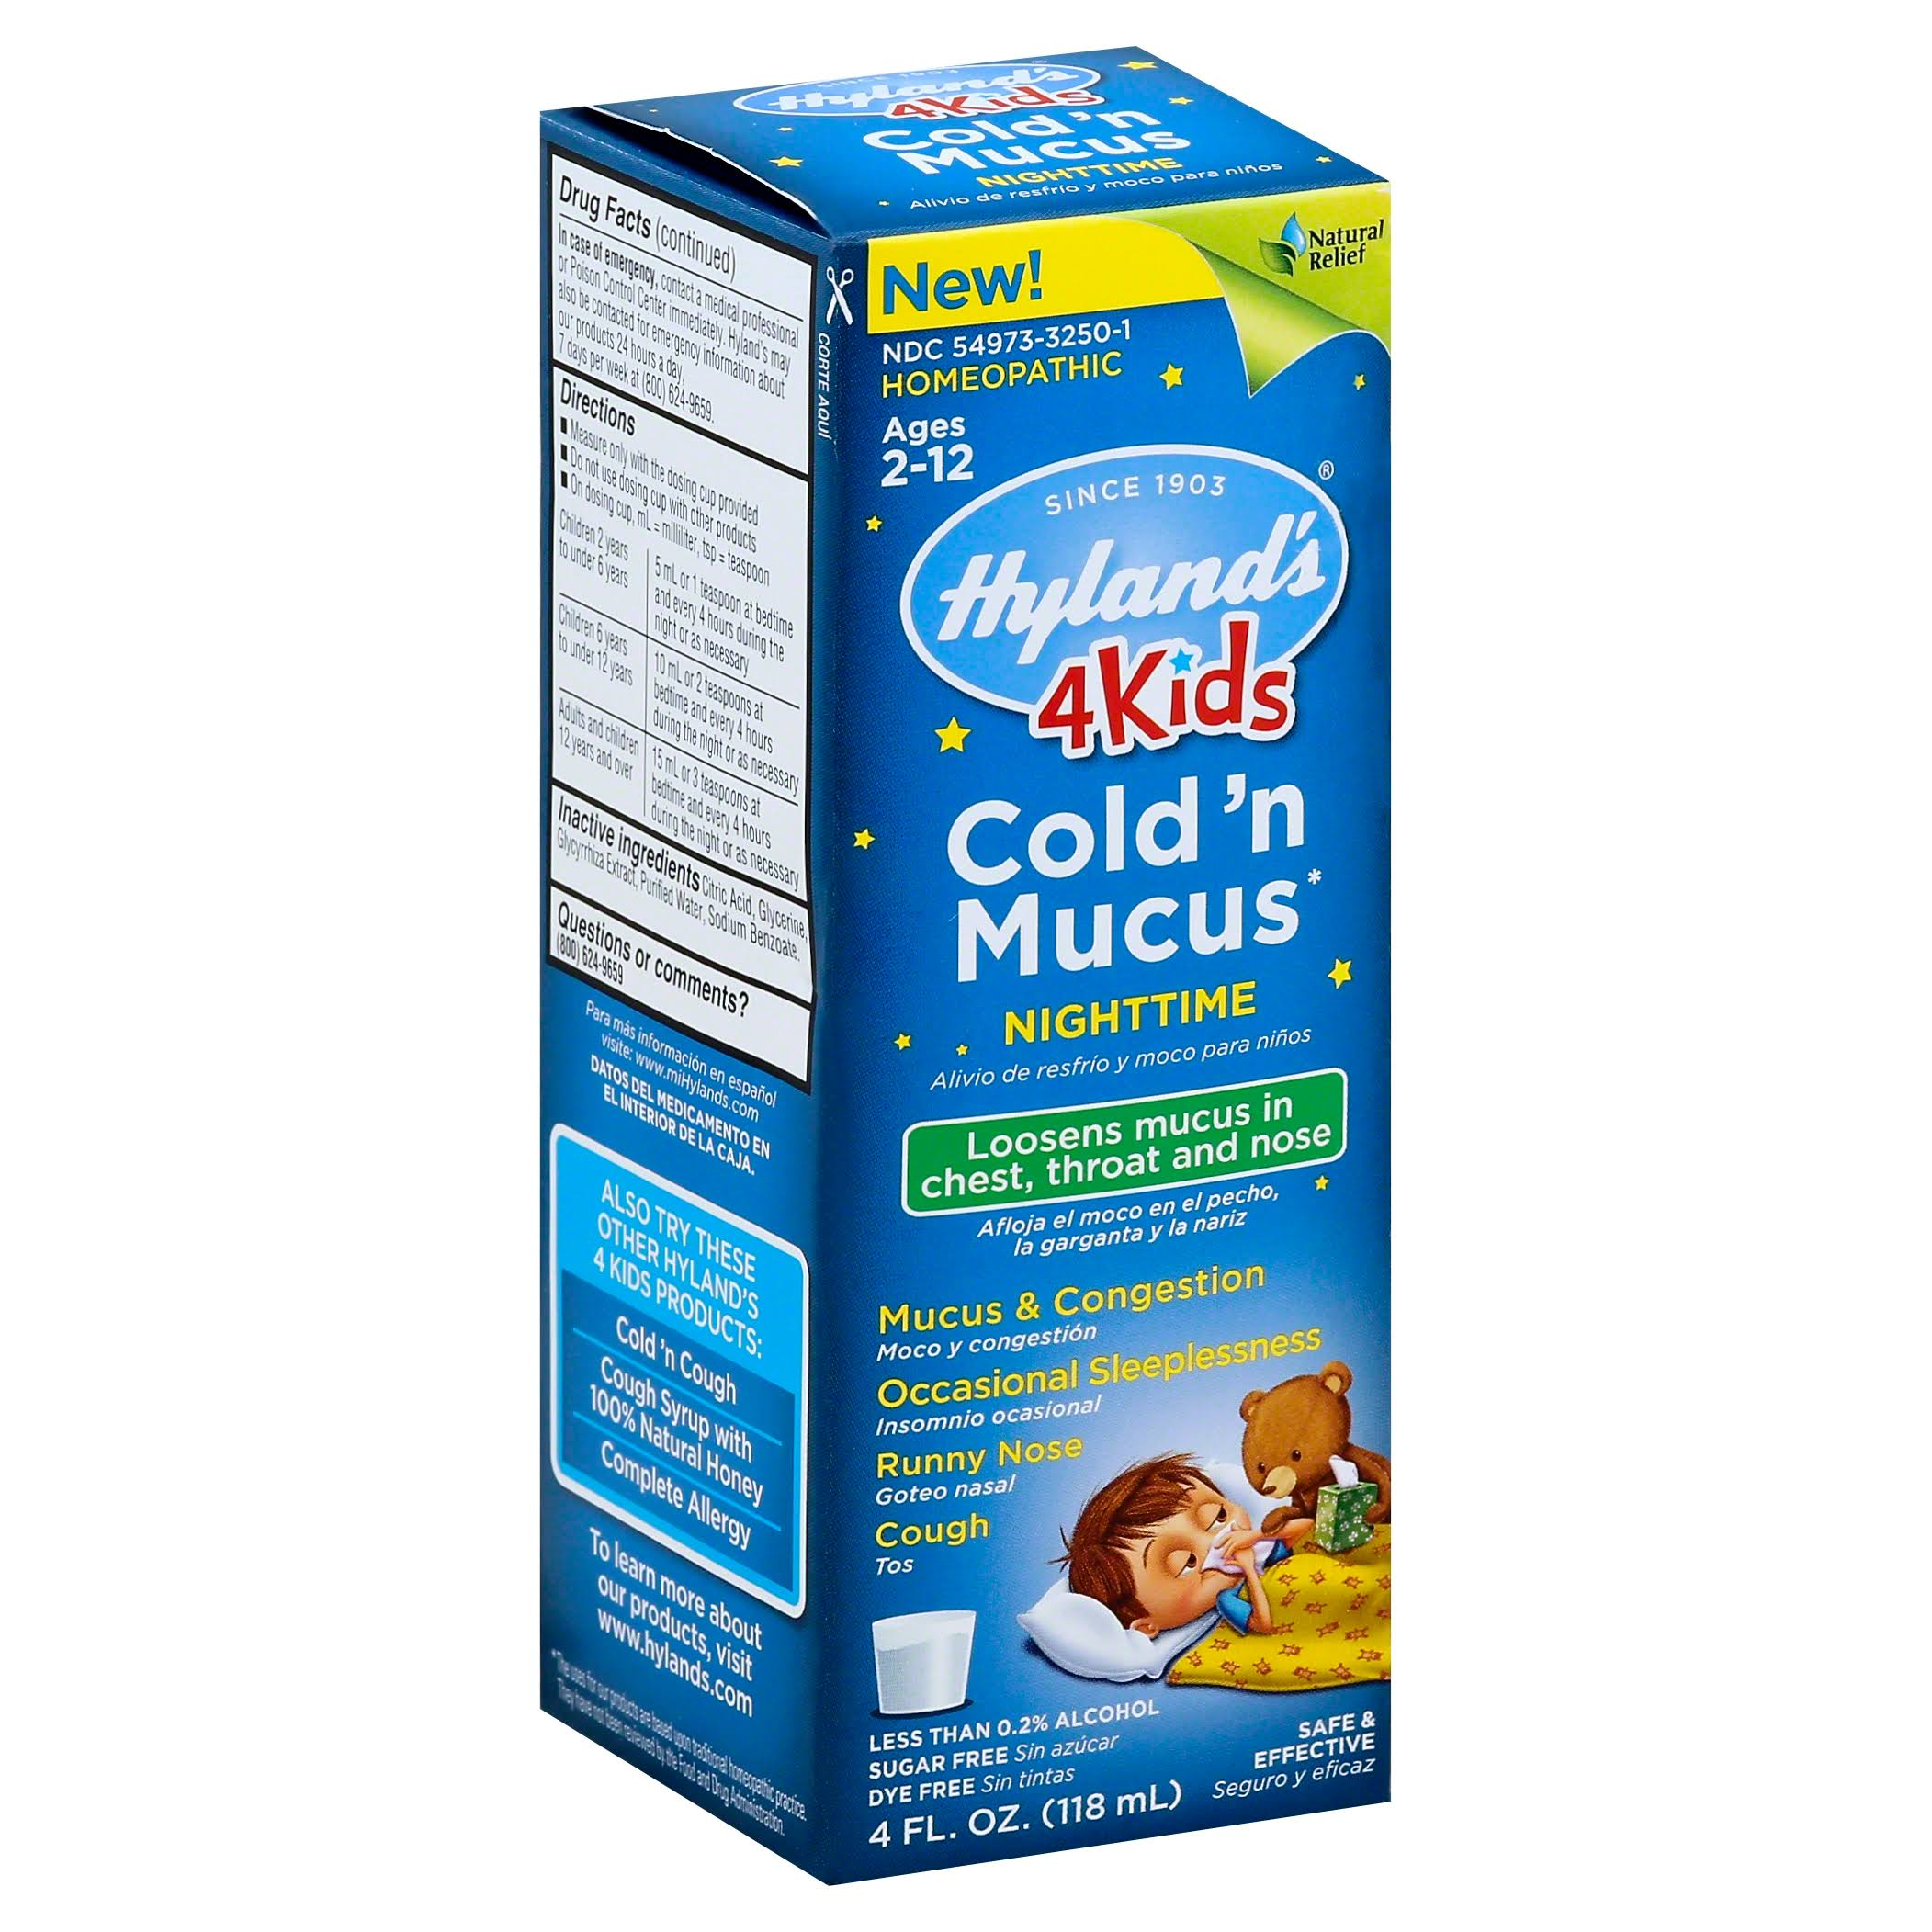 Hyland's 4 Kids Cold 'n Mucus Nighttime Relief - Ages 2-12, 4oz